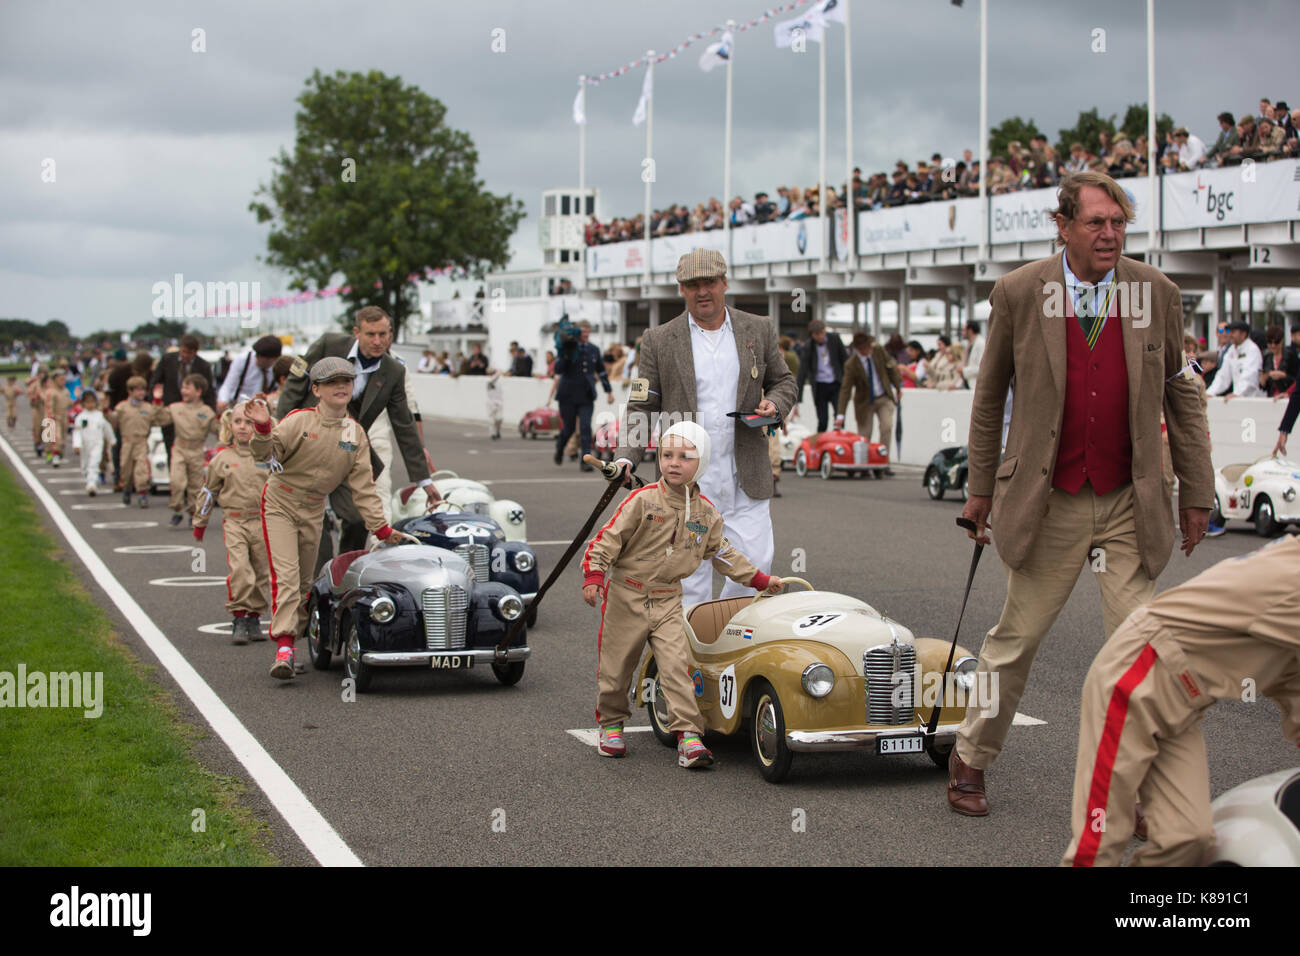 Settrington Cup Wettbewerb für Austin J40 Pedal Cars in Goodwood Revival 2017 Konferenz, Goodwood Rennstrecke, Stockbild